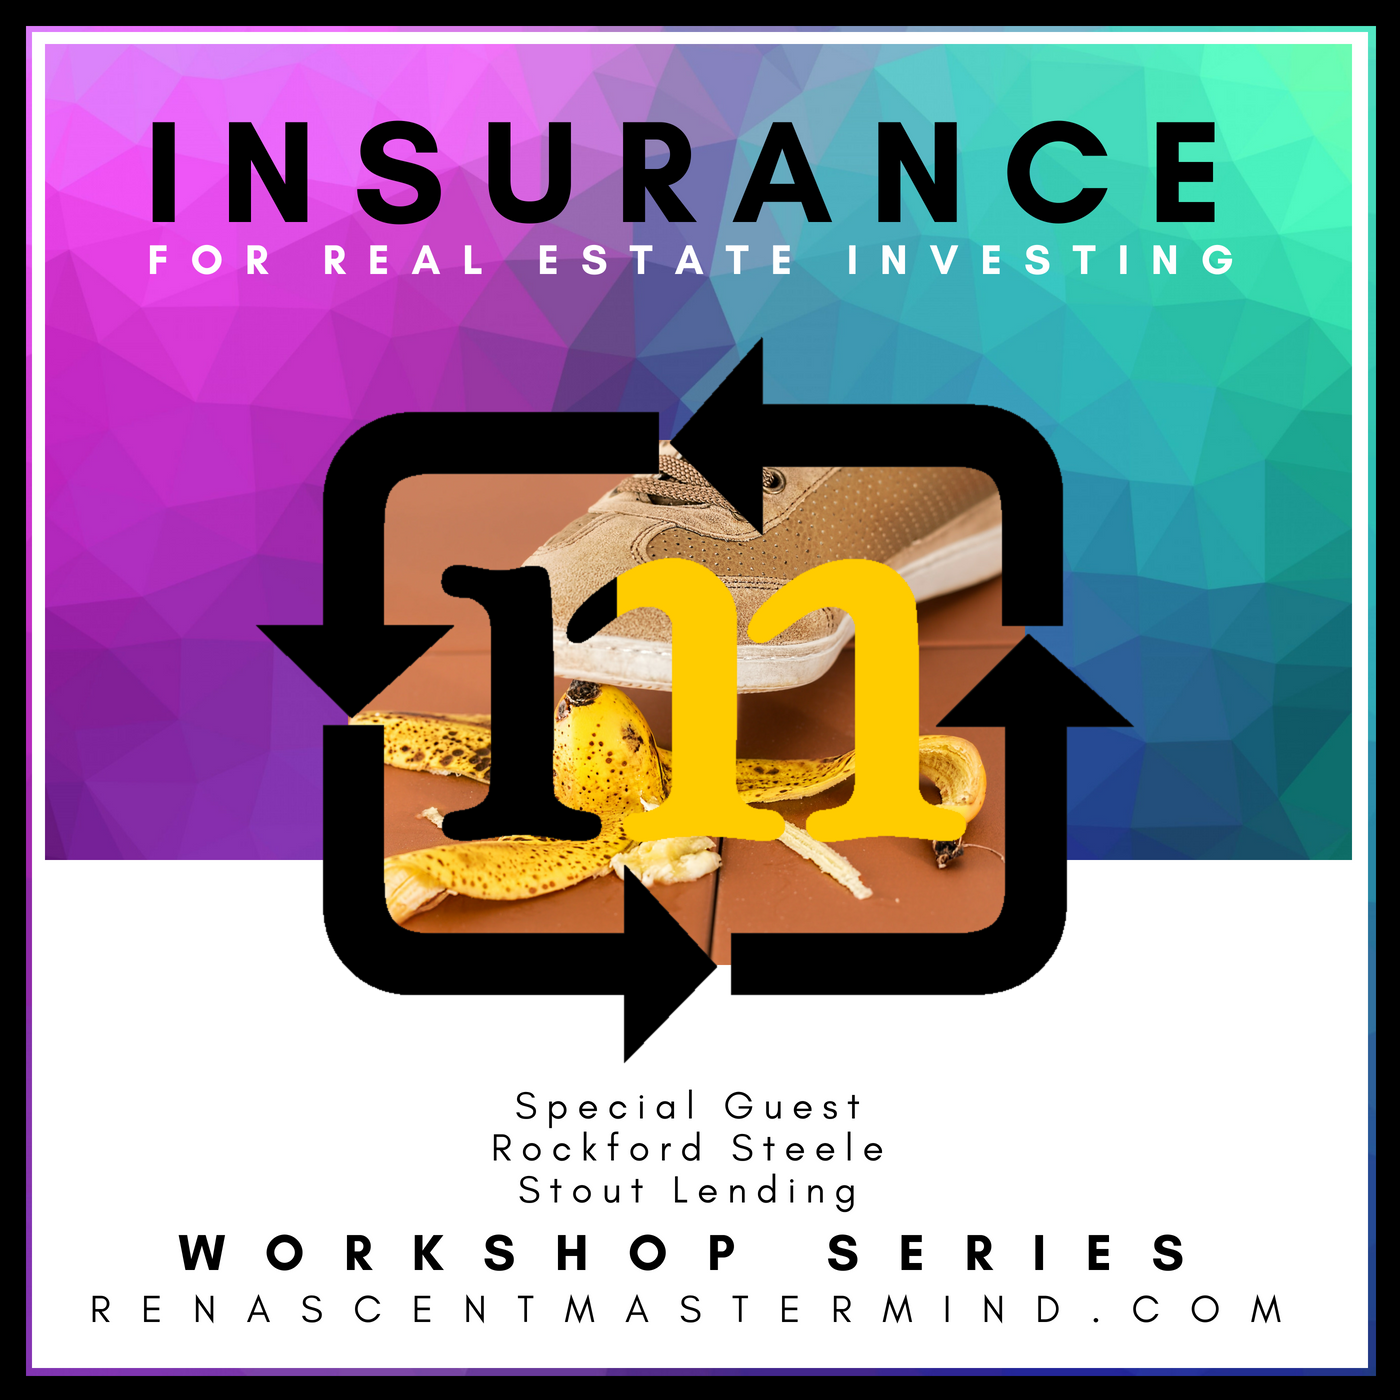 OKC Real Estate Investors with Renascent Mastermind Presents: Insurance for Real Estate Investing | Workshop Series with special guest expert Rockford Steele with Stout Lending